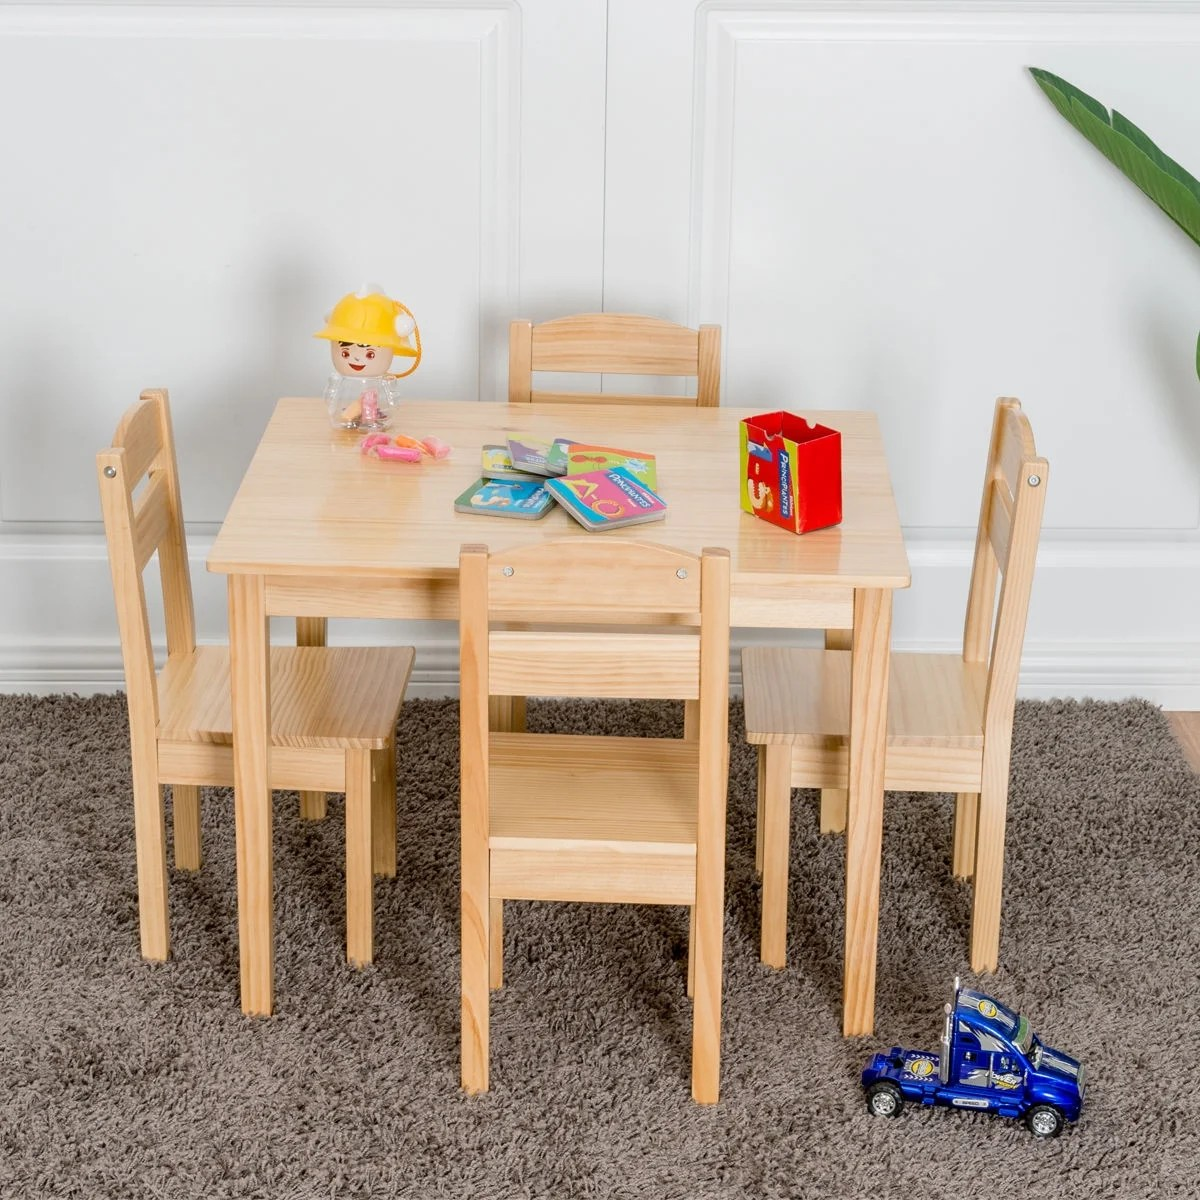 Childrens Wooden Table And Chairs Gymax Children Play Table Chair 5pcs Set Pine Wood Kids Table